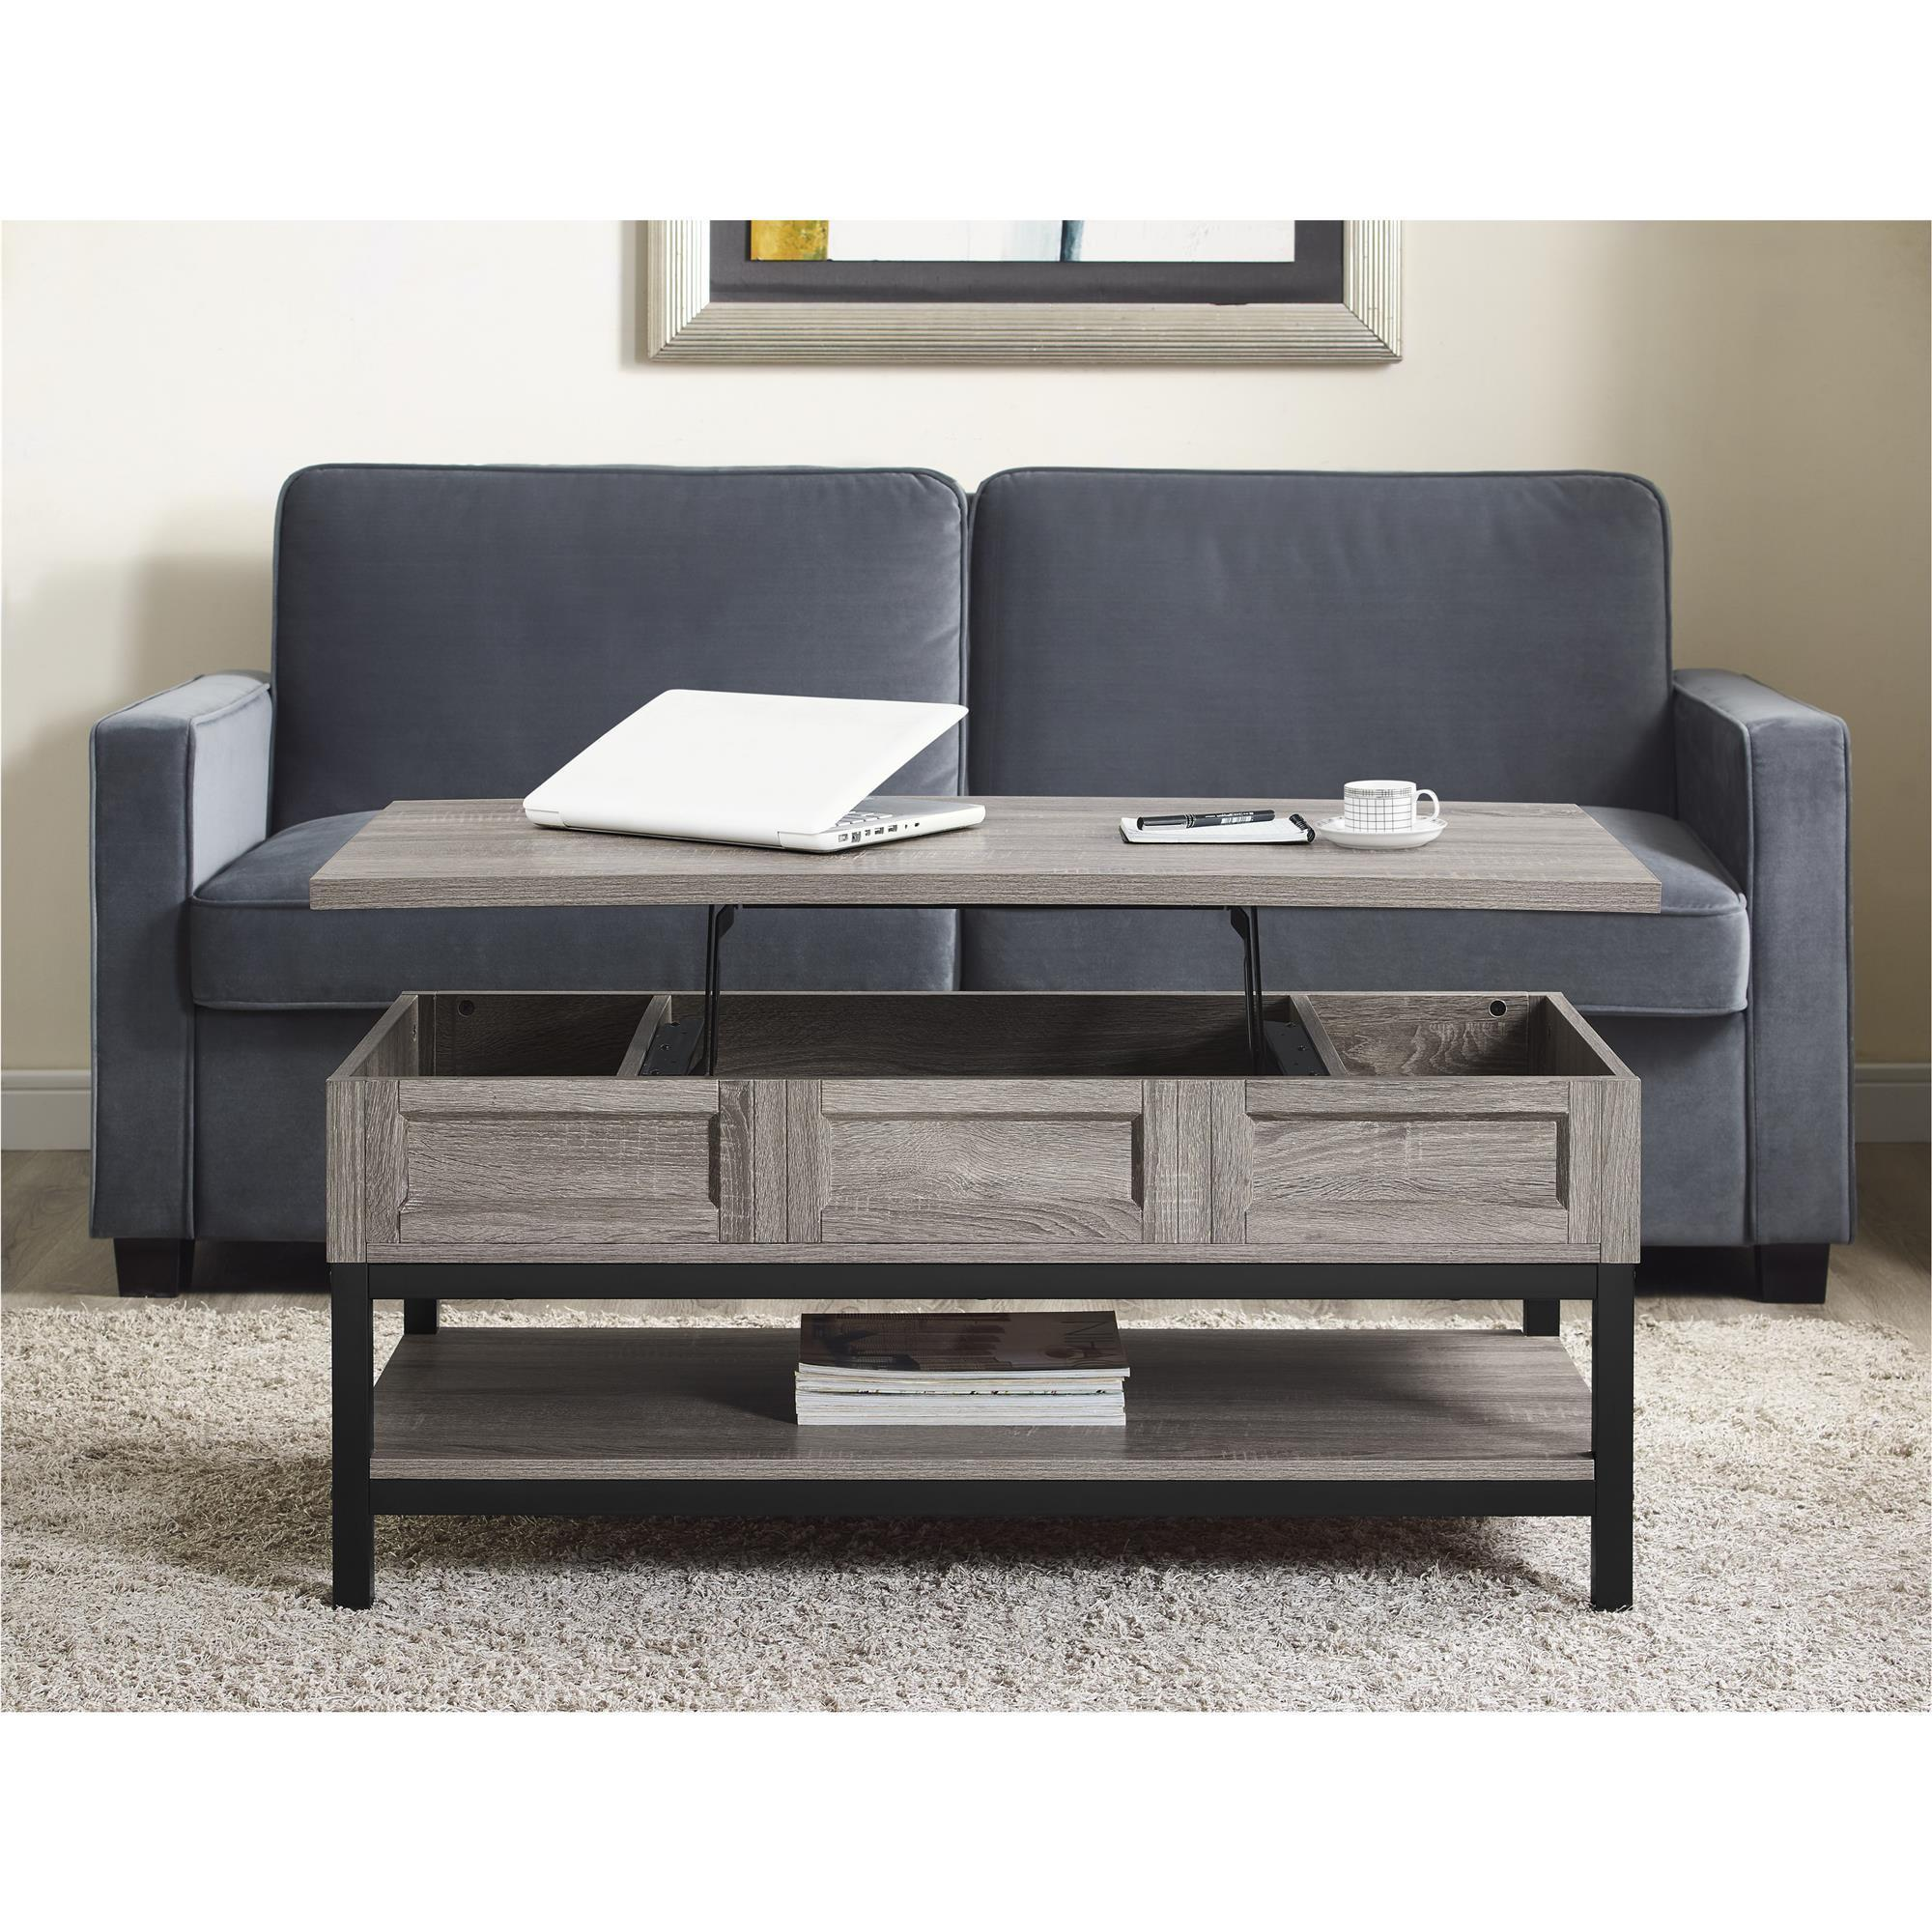 Captivating Ameriwood Home Barrett Modern Farmhouse Lift Top Sonoma Oak Coffee Table    Free Shipping Today   Overstock.com   20561911